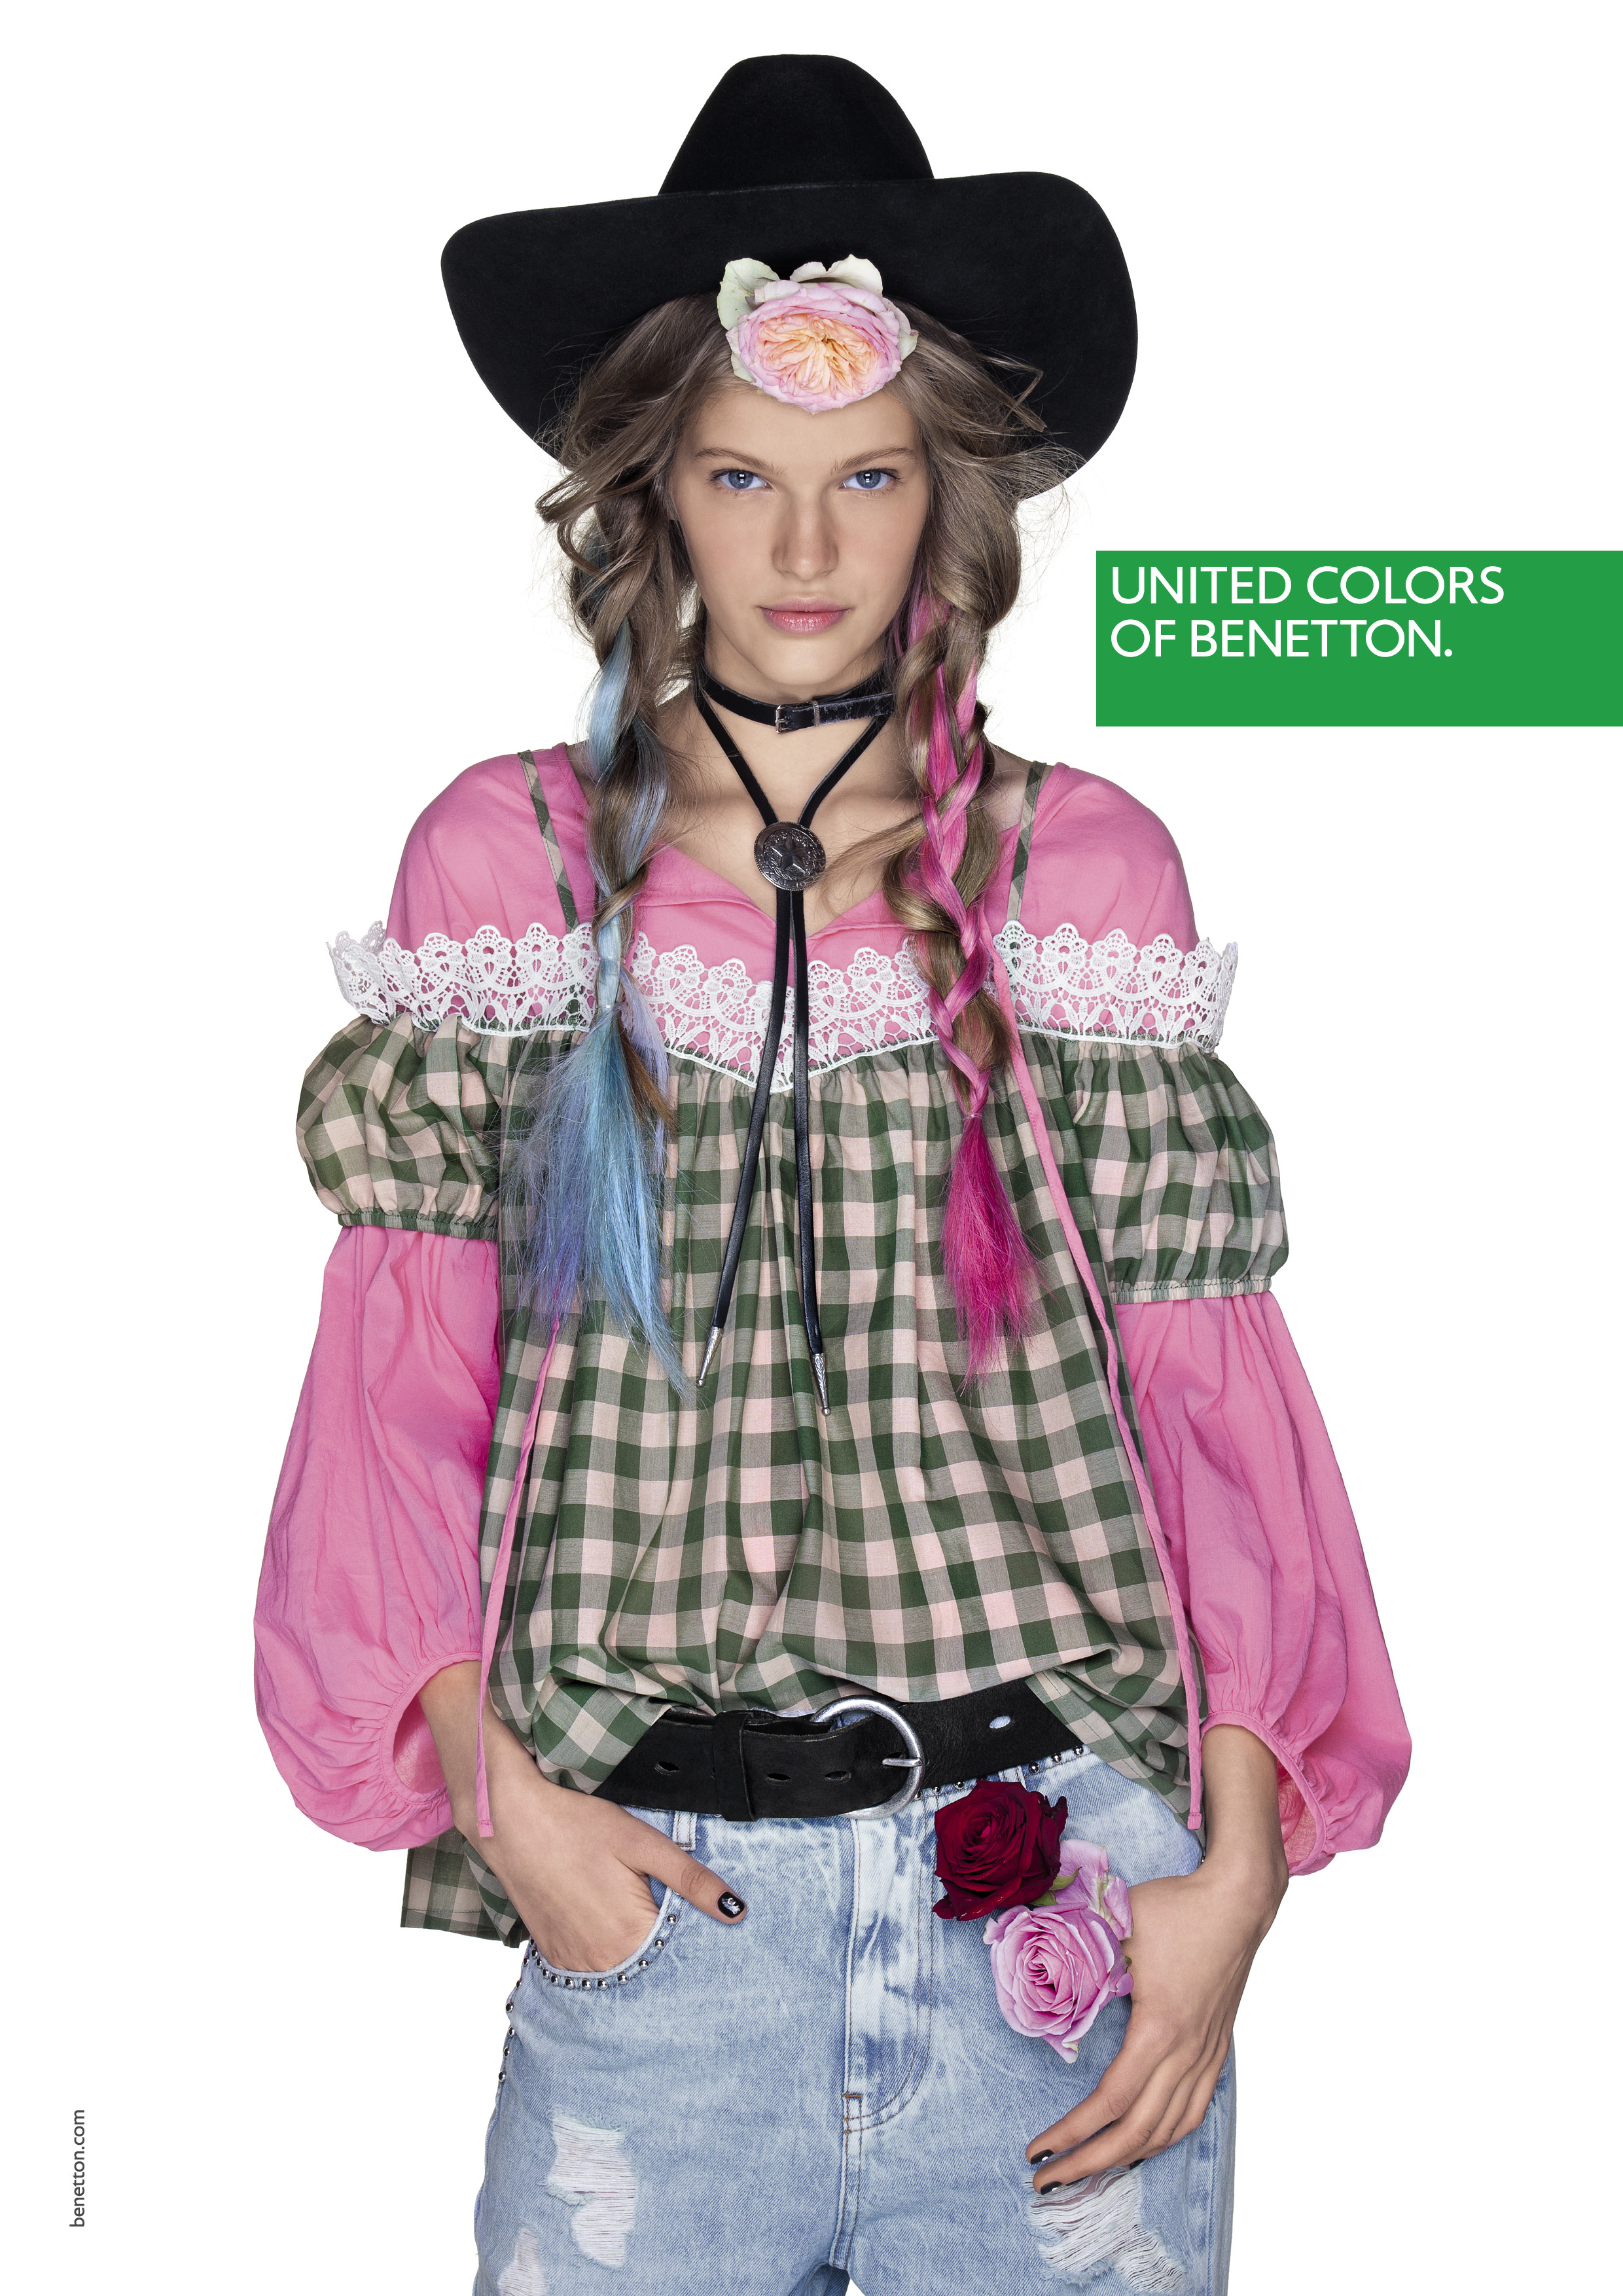 Benetton_Summer 18 Adv Campaign_Adult_SP01